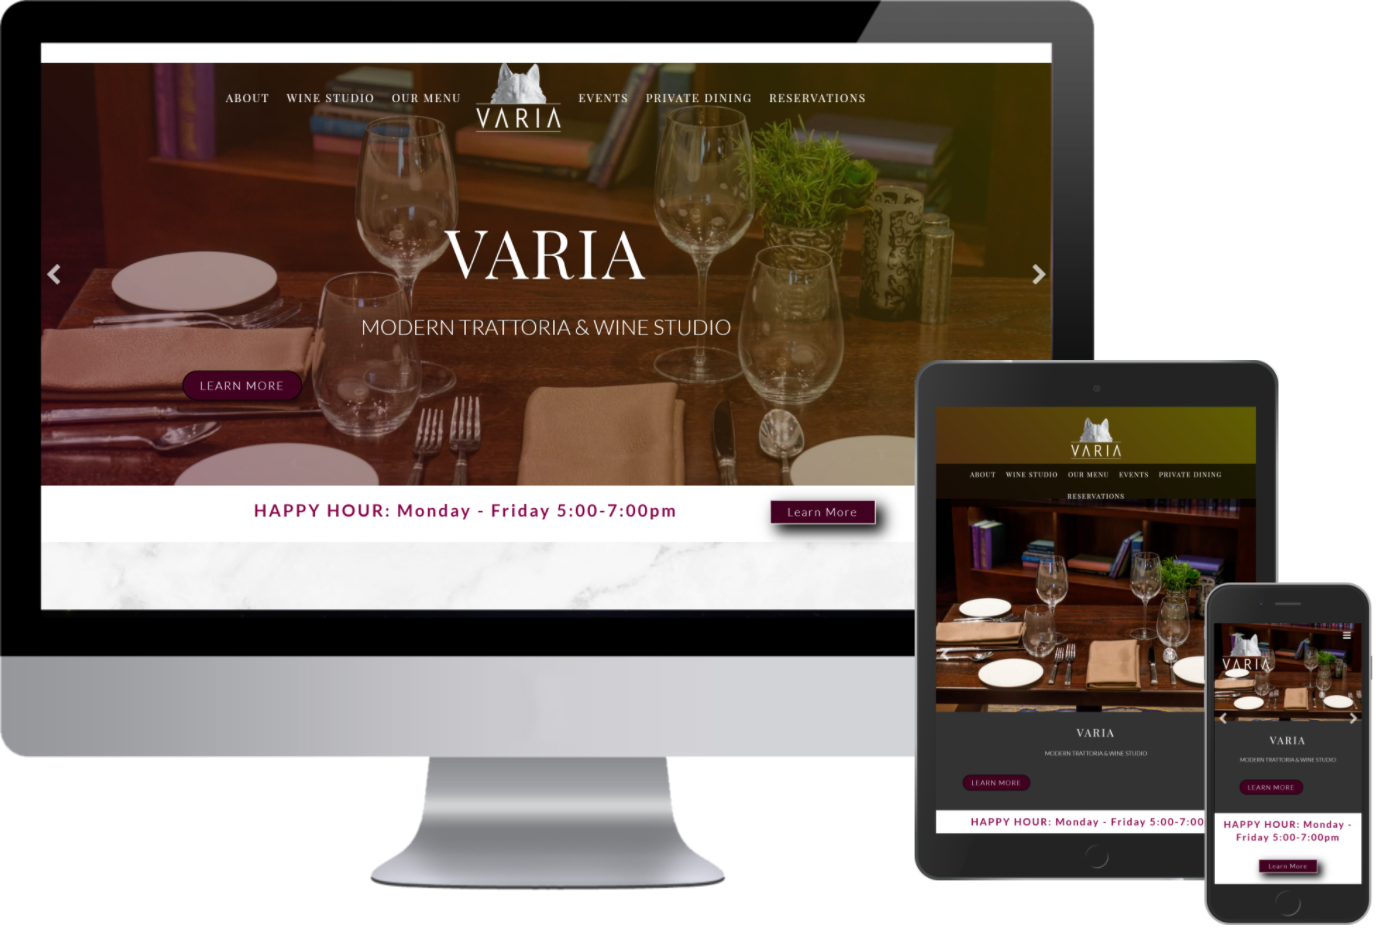 Greenstone Media built a website for Varia and now they have a website that works and is responsive